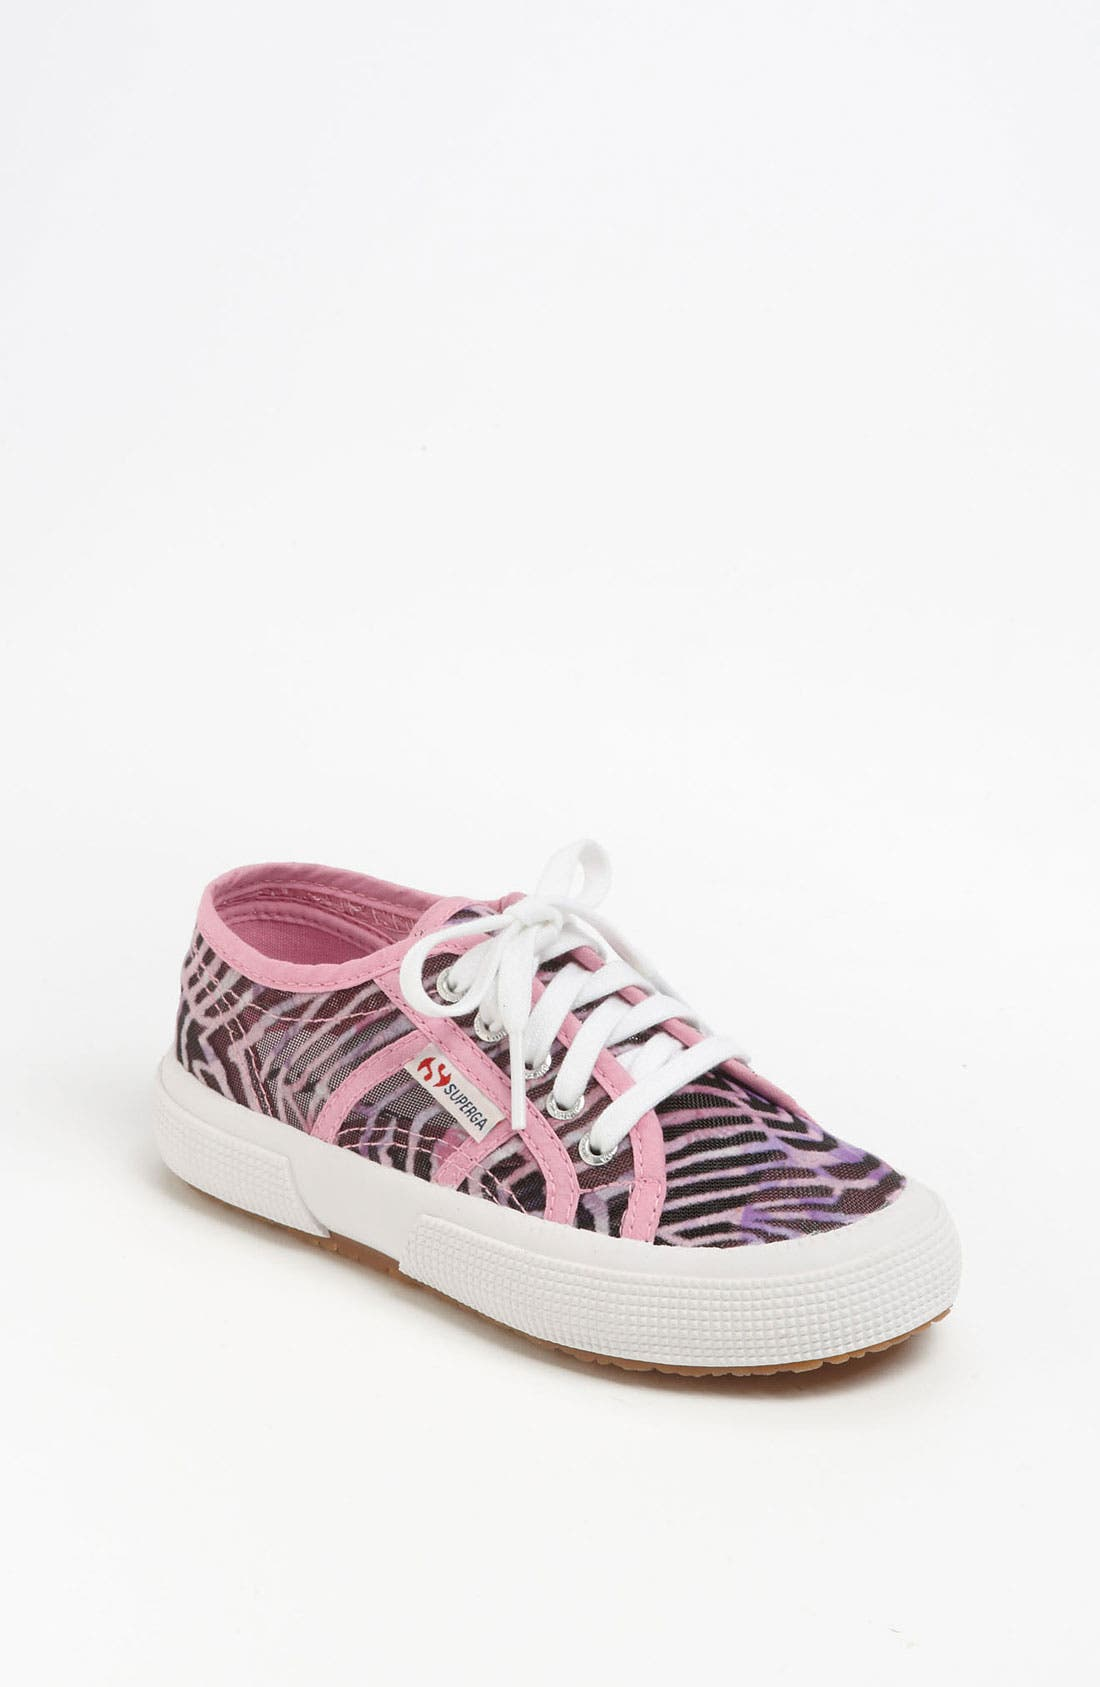 Main Image - Superga 'Safari Junior Classic' Sneaker (Walker, Toddler & Little Kid)